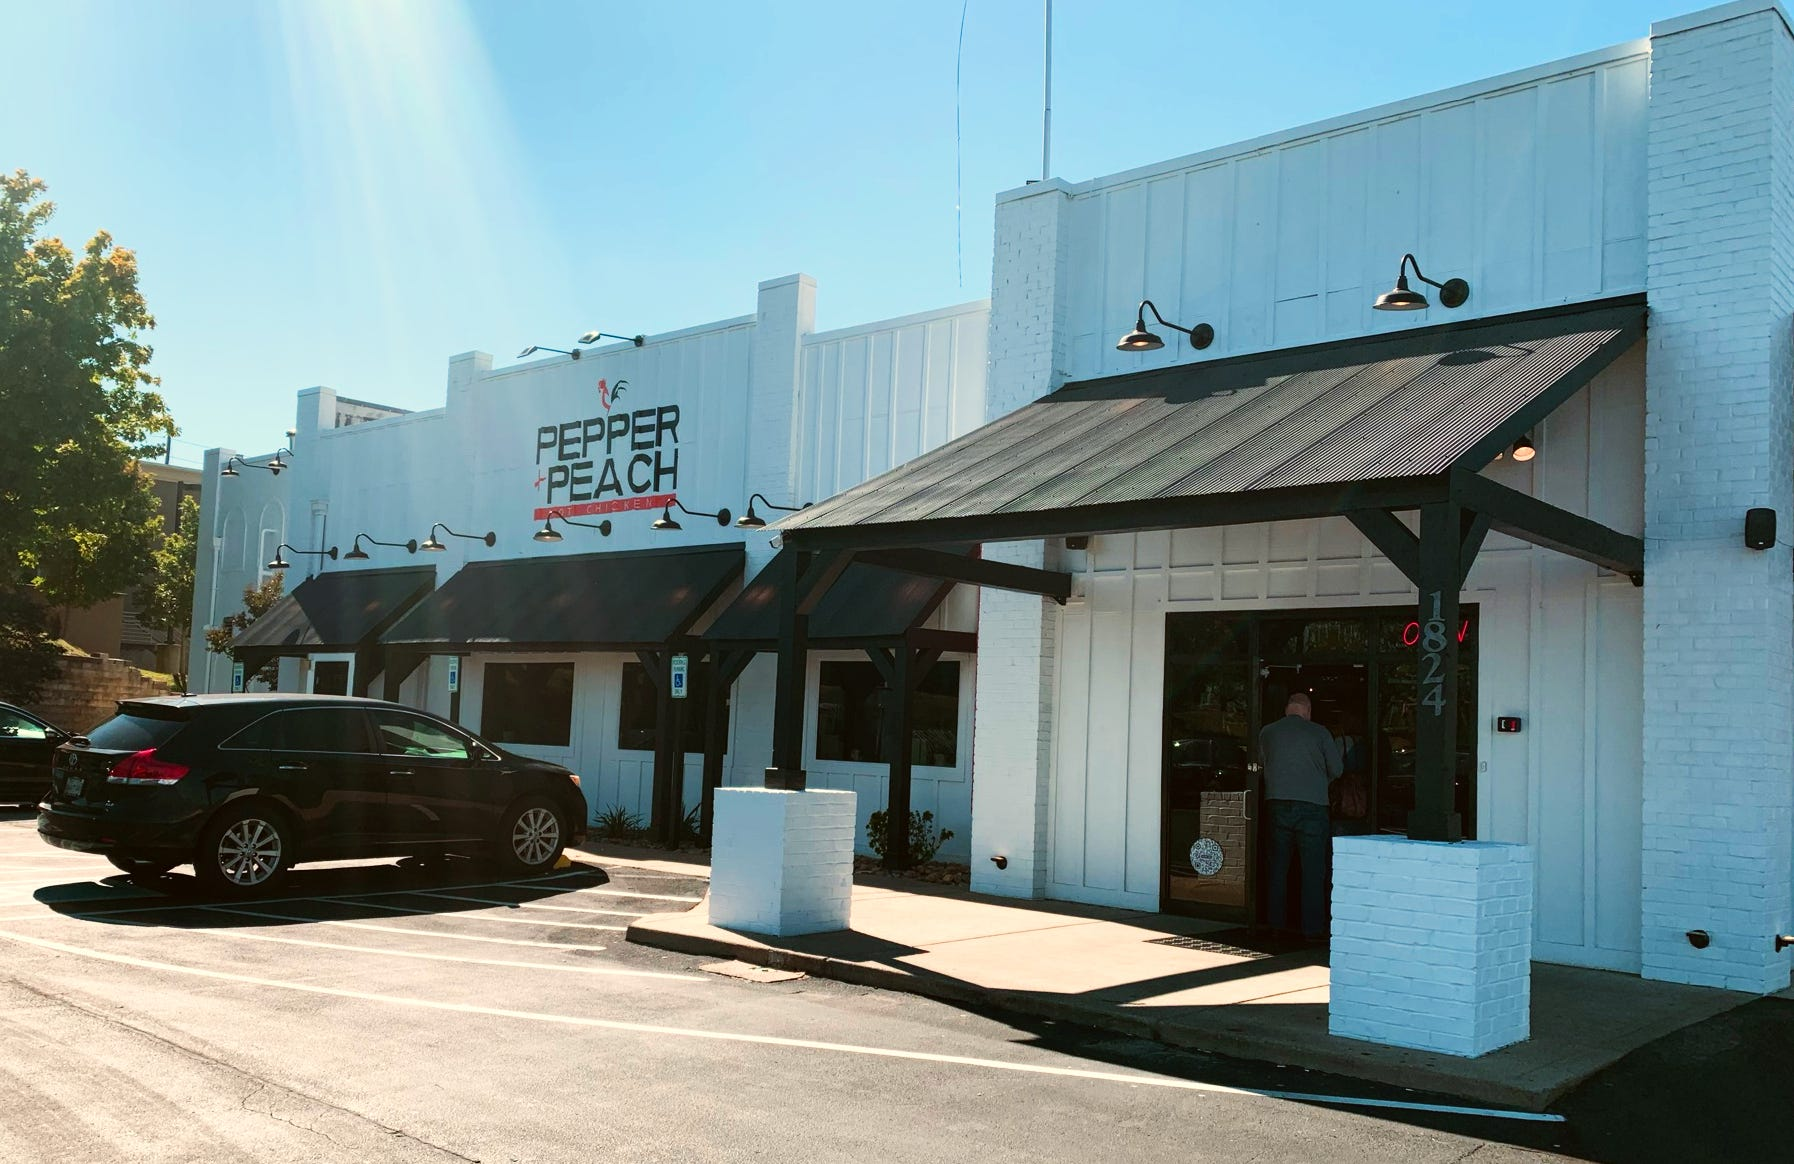 Pepper+Peach, a hot chicken restaurant founded by The Peach Cobbler Factory owners, is located at 1824 Old Fort Parkway in Murfreesboro.